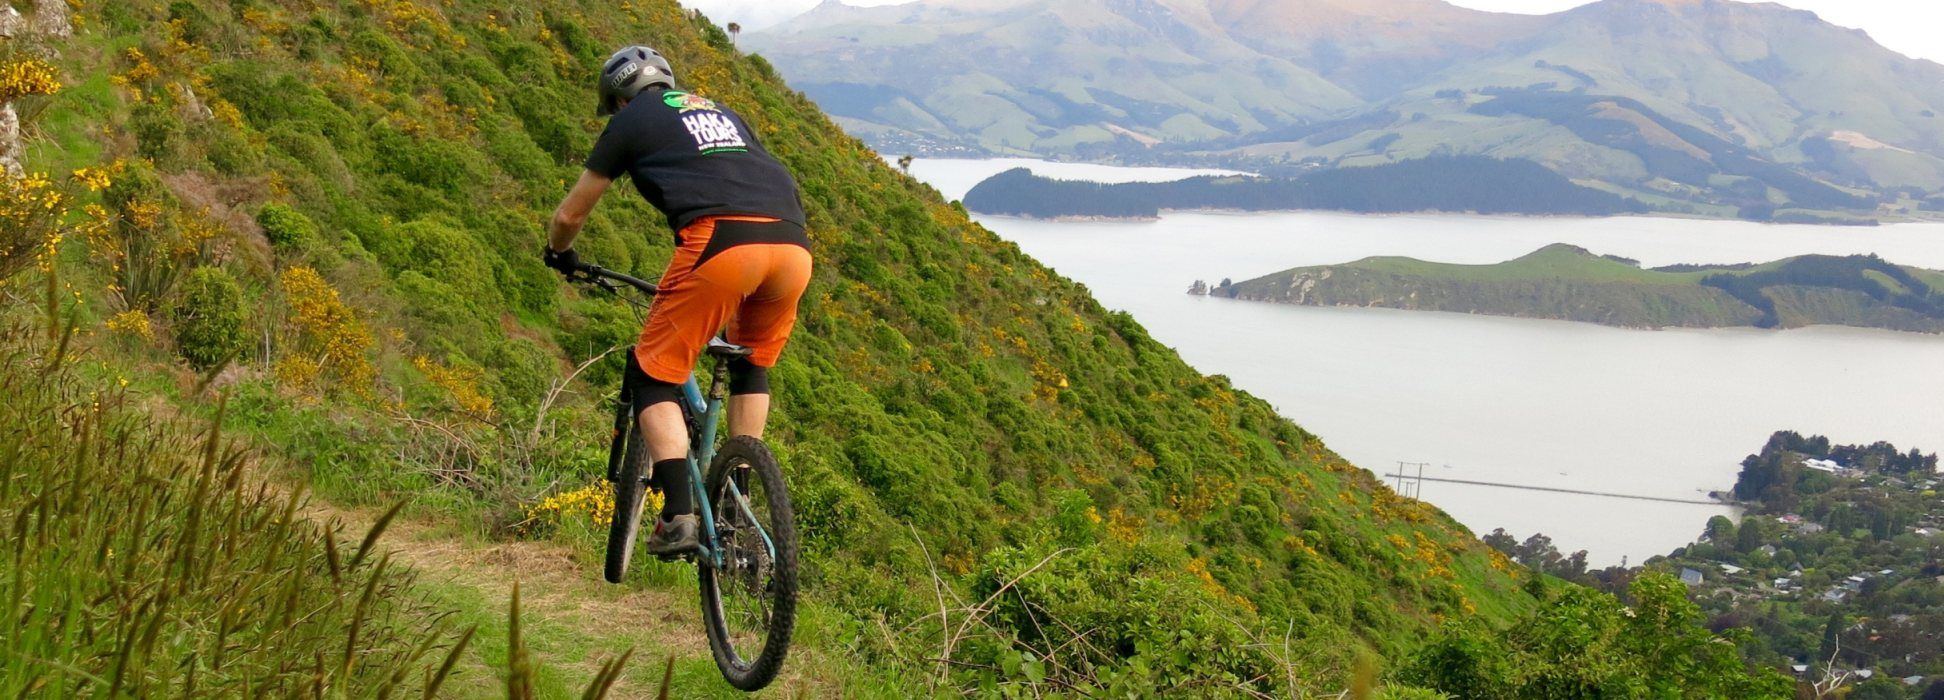 Haka MTB Tours discount: 5% off mountain biking in New Zealand